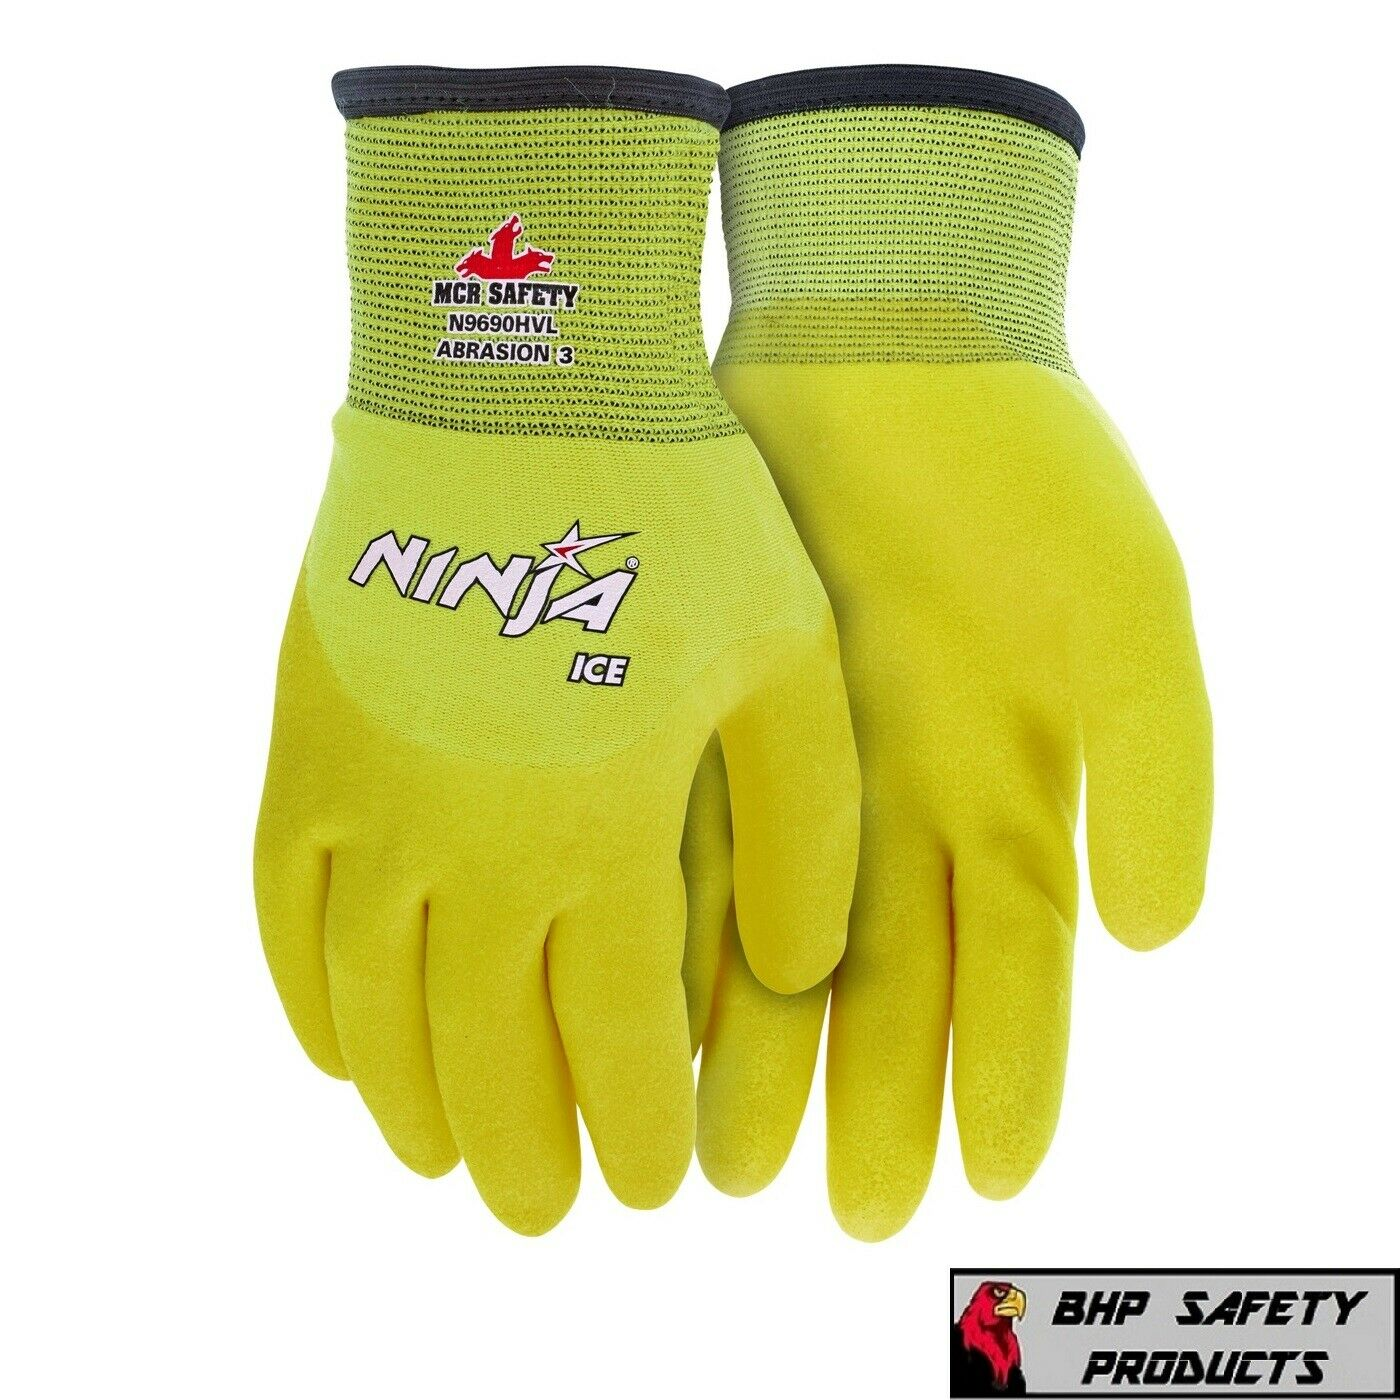 MCR MEMPHIS NINJA ICE *HI-VIS* INSULATED WINTER WEATHER SAFE